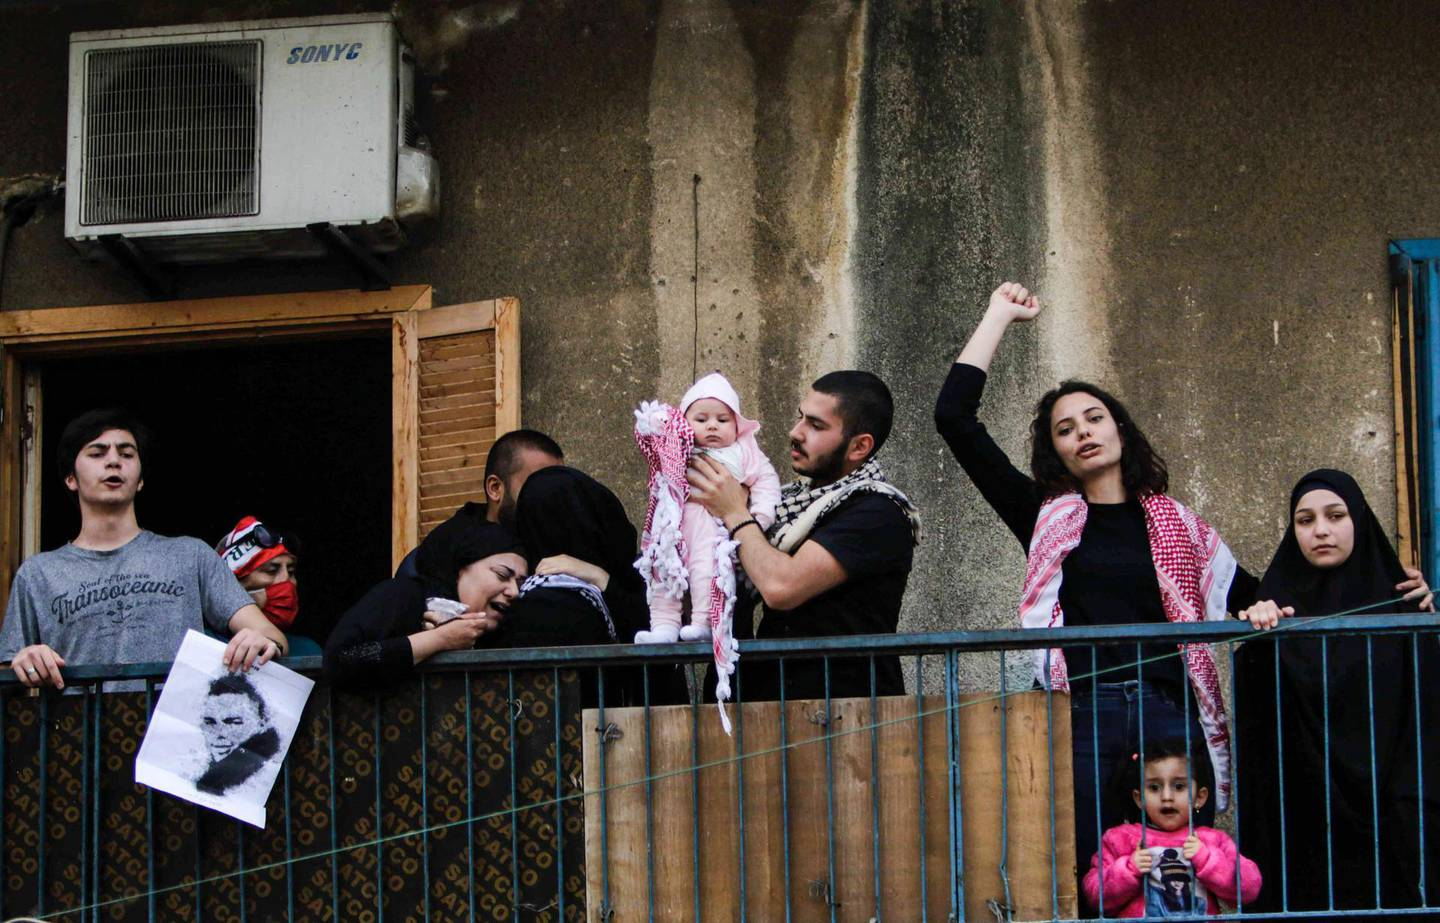 Family members of Lebanese protester Fawwaz al-Samman -- who died after he was shot during riots in late April -- hold up his infant girl and react as they stand in their balcony as protesters coming from acrosss the country gather for a demonstration outside his family home in the northern port city of Tripoli on May 3, 2020.  / AFP / Ibrahim CHALHOUB